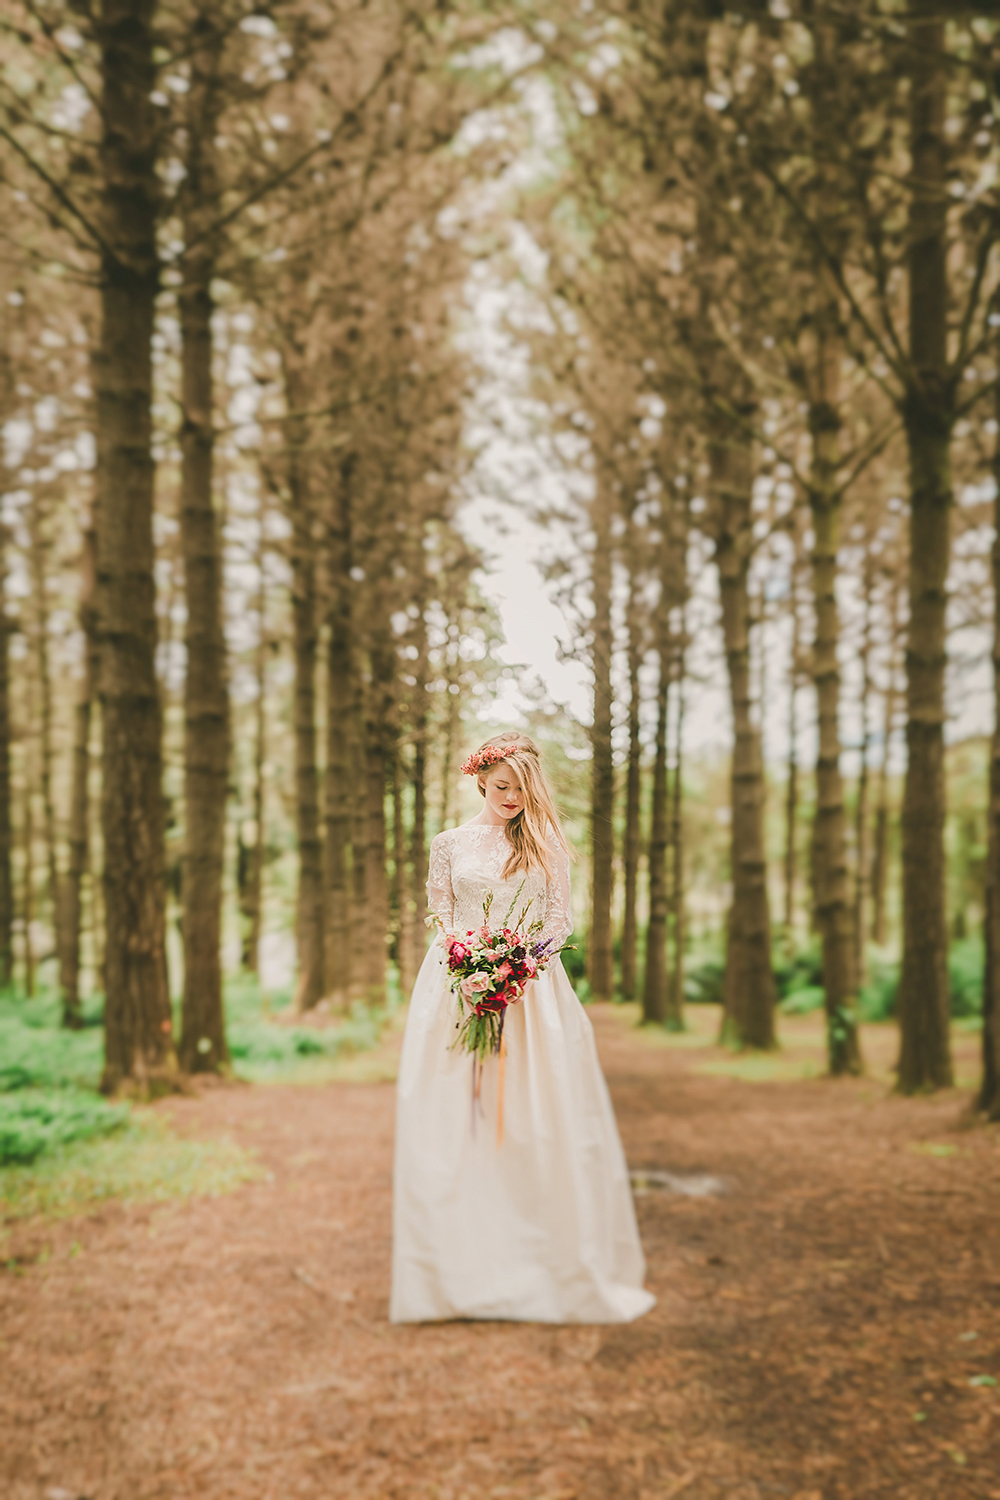 Hunua Ranges Auckland forest boho Wedding photographer rainy day romantic bride rue du siene